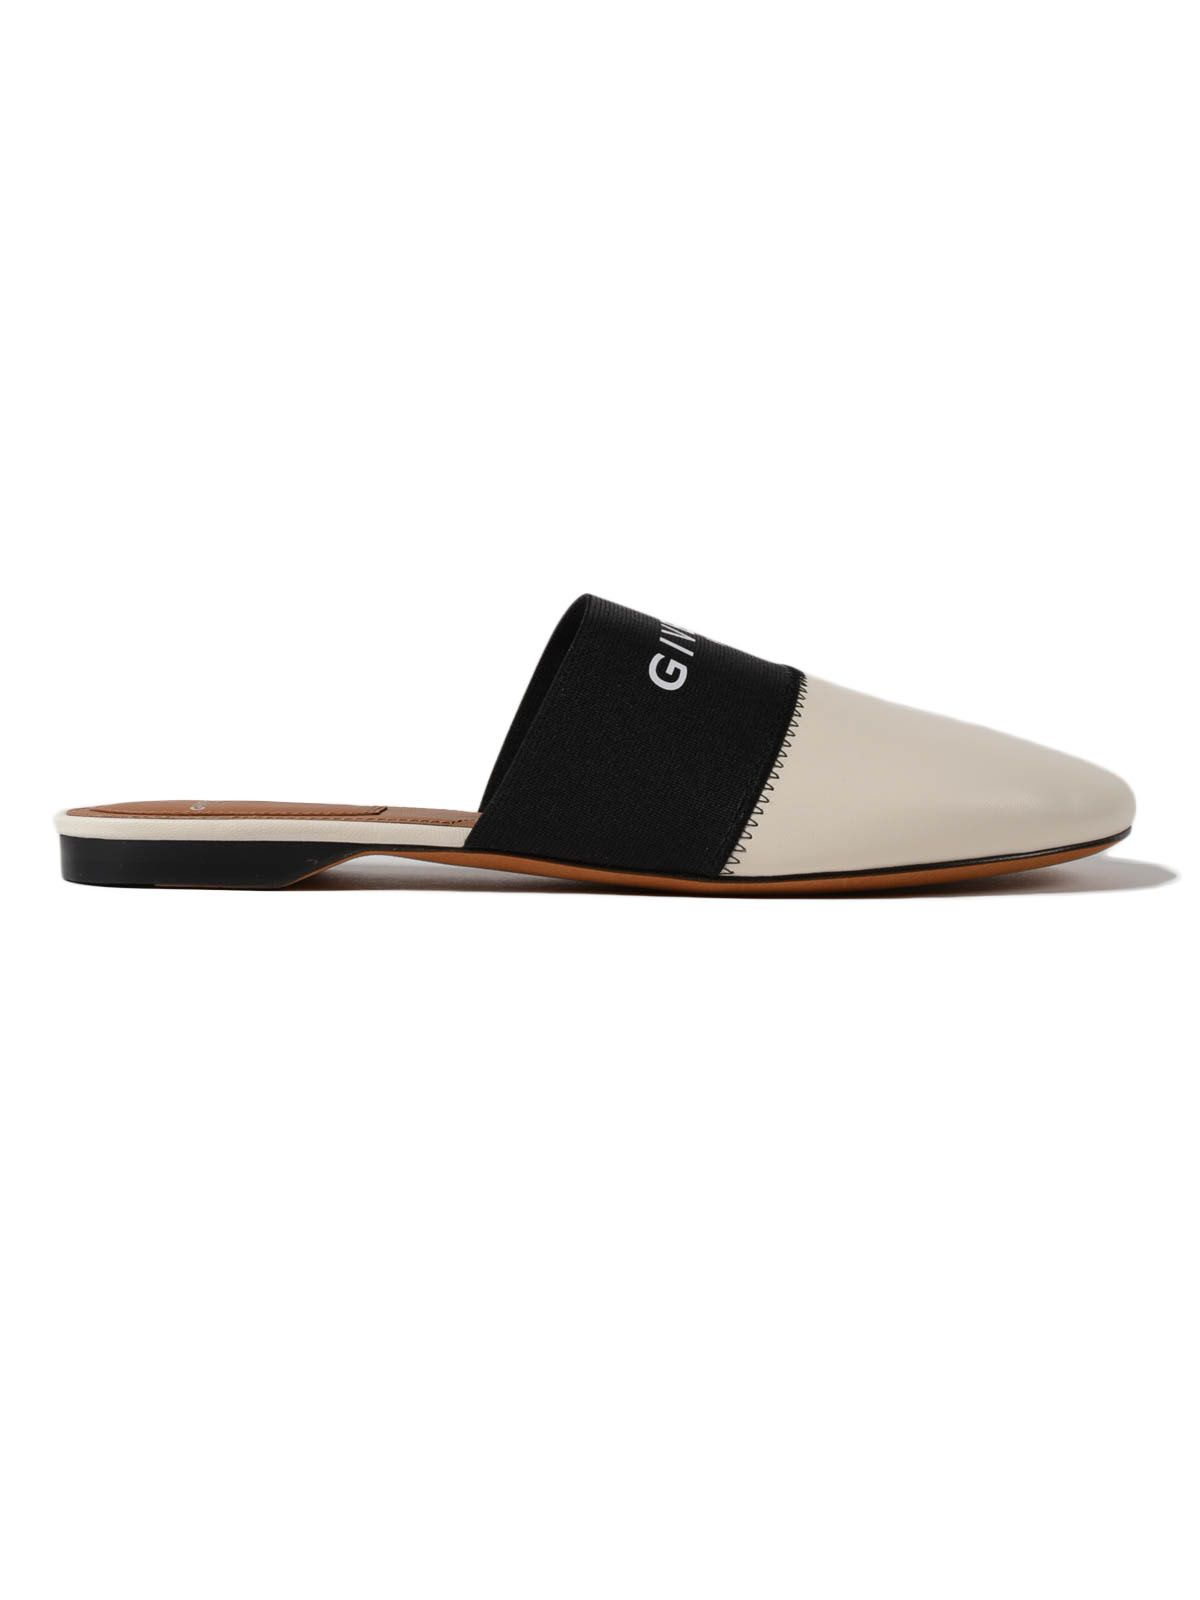 Givenchy Bedford Flat Mule